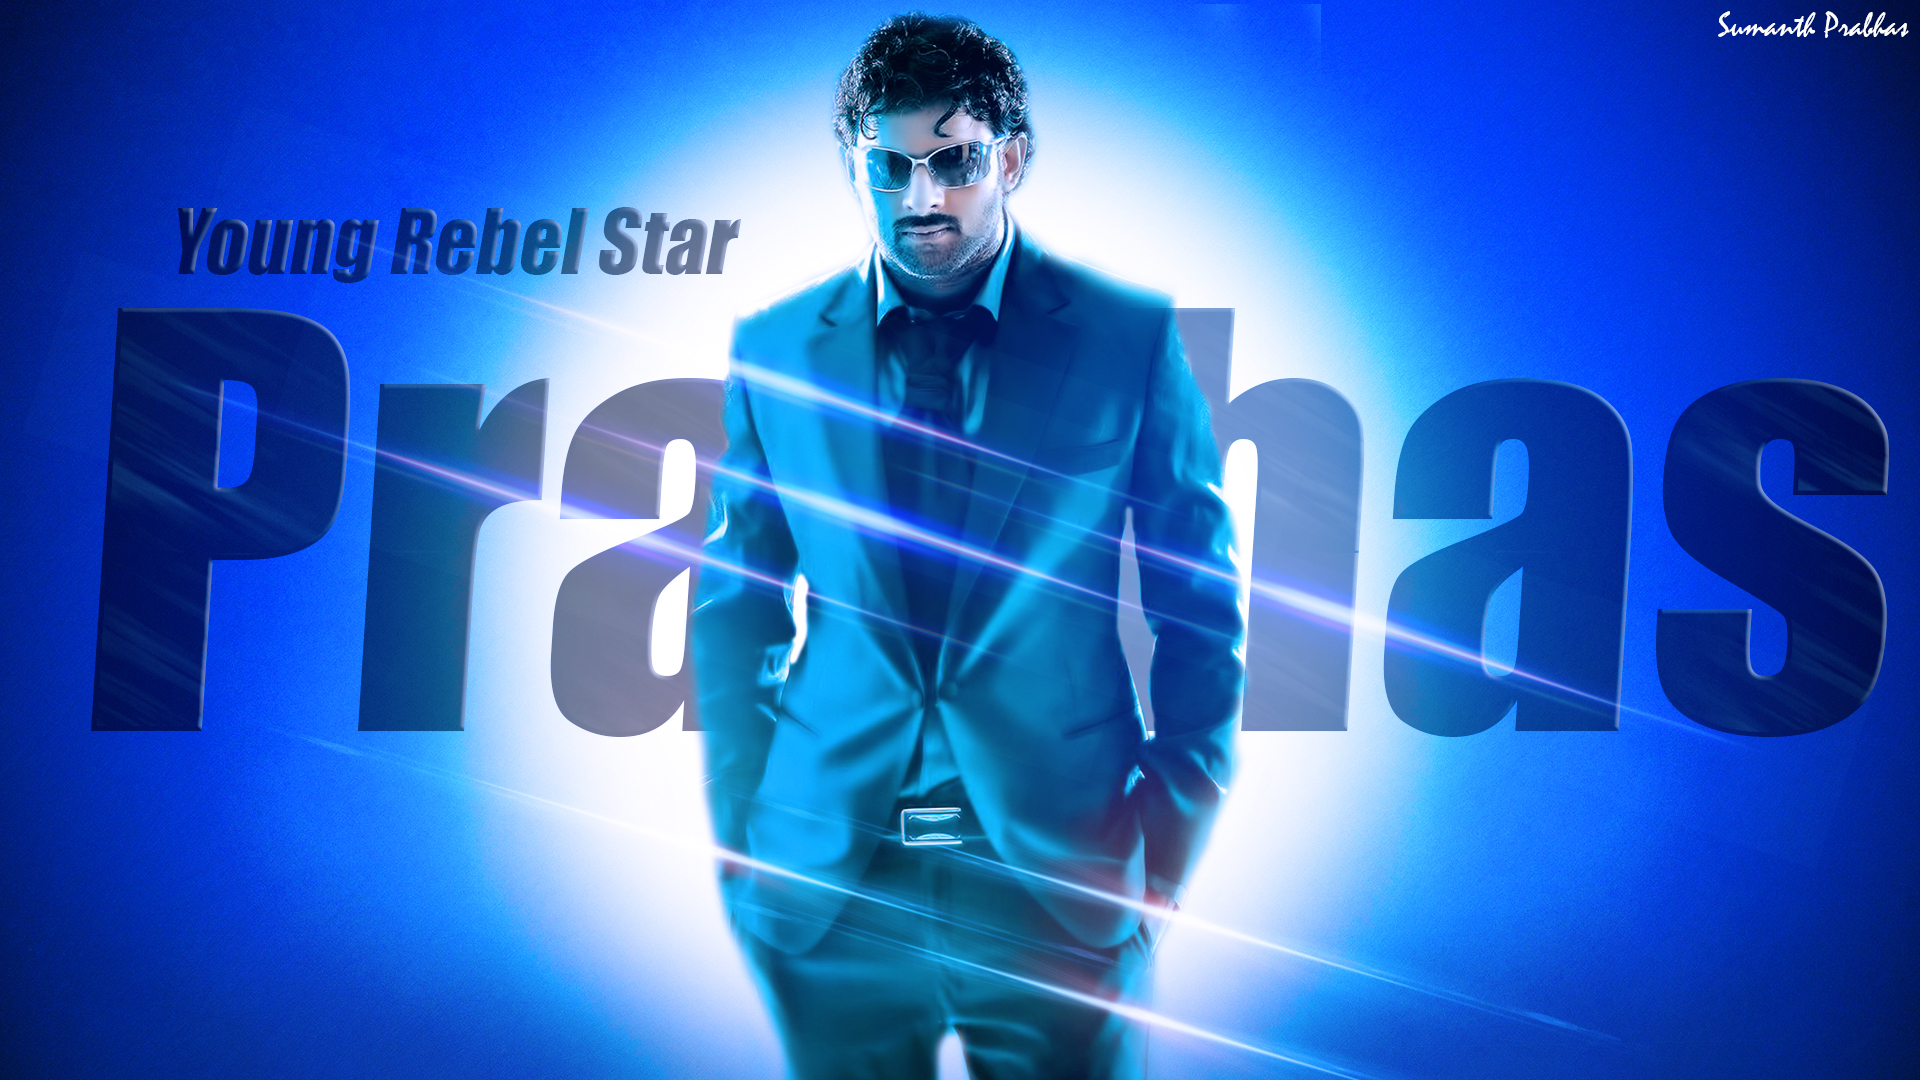 Stylish Prabhas Hq Wallpaper In Rebel: Hd Wallpapers